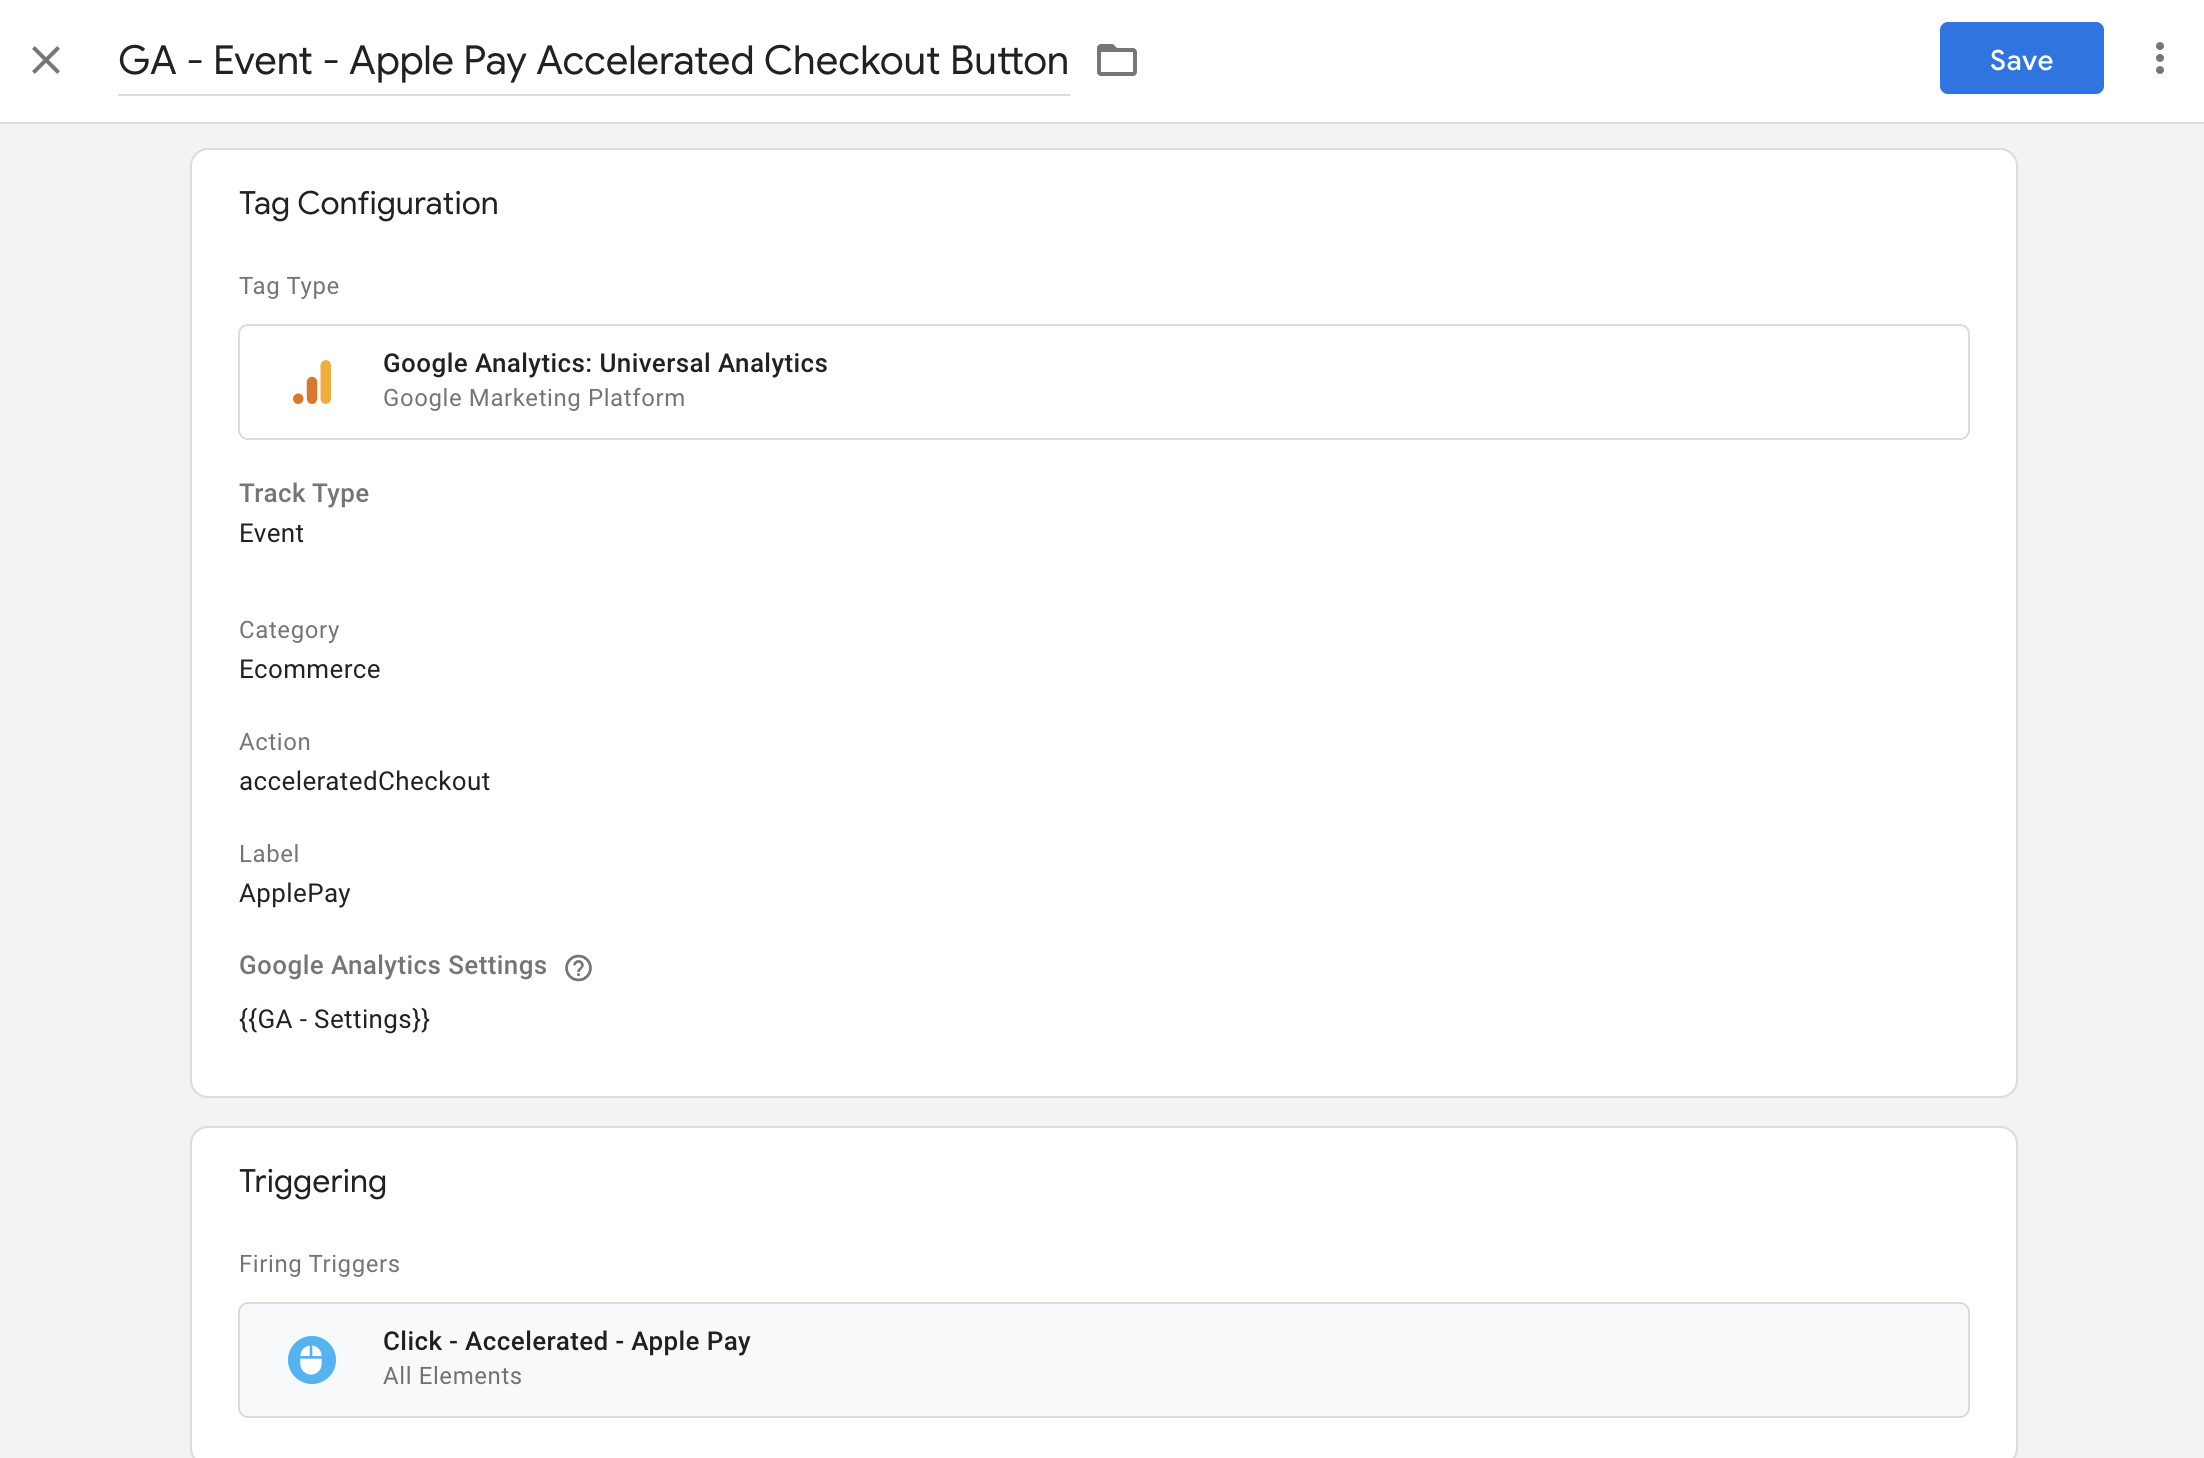 example of how to set up event tracking tags for accelerated checkout